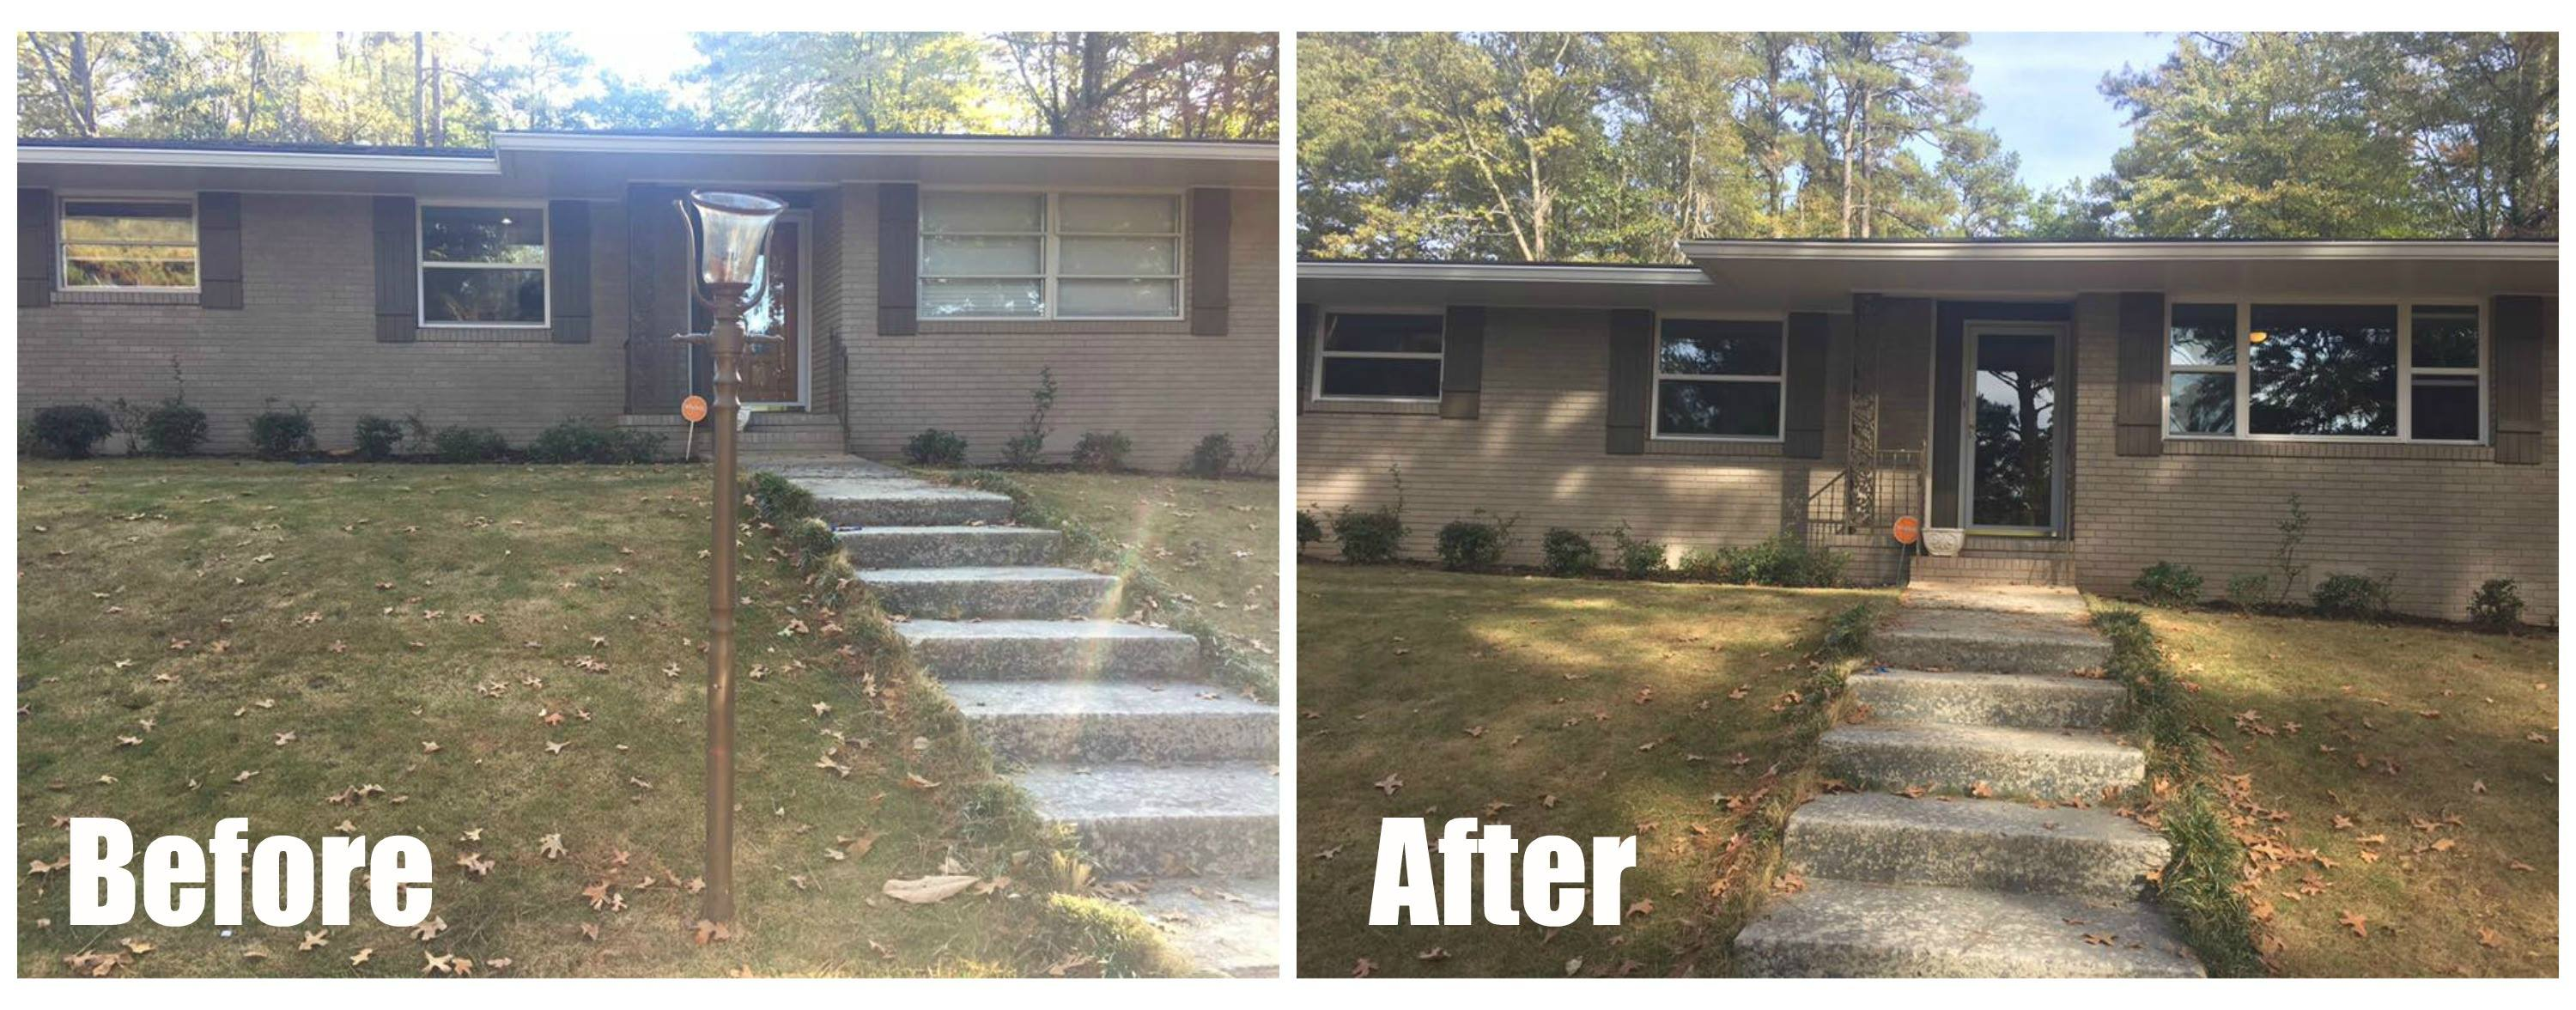 This is a before and after photo of a residential glass project done by the Glass Whisperer.